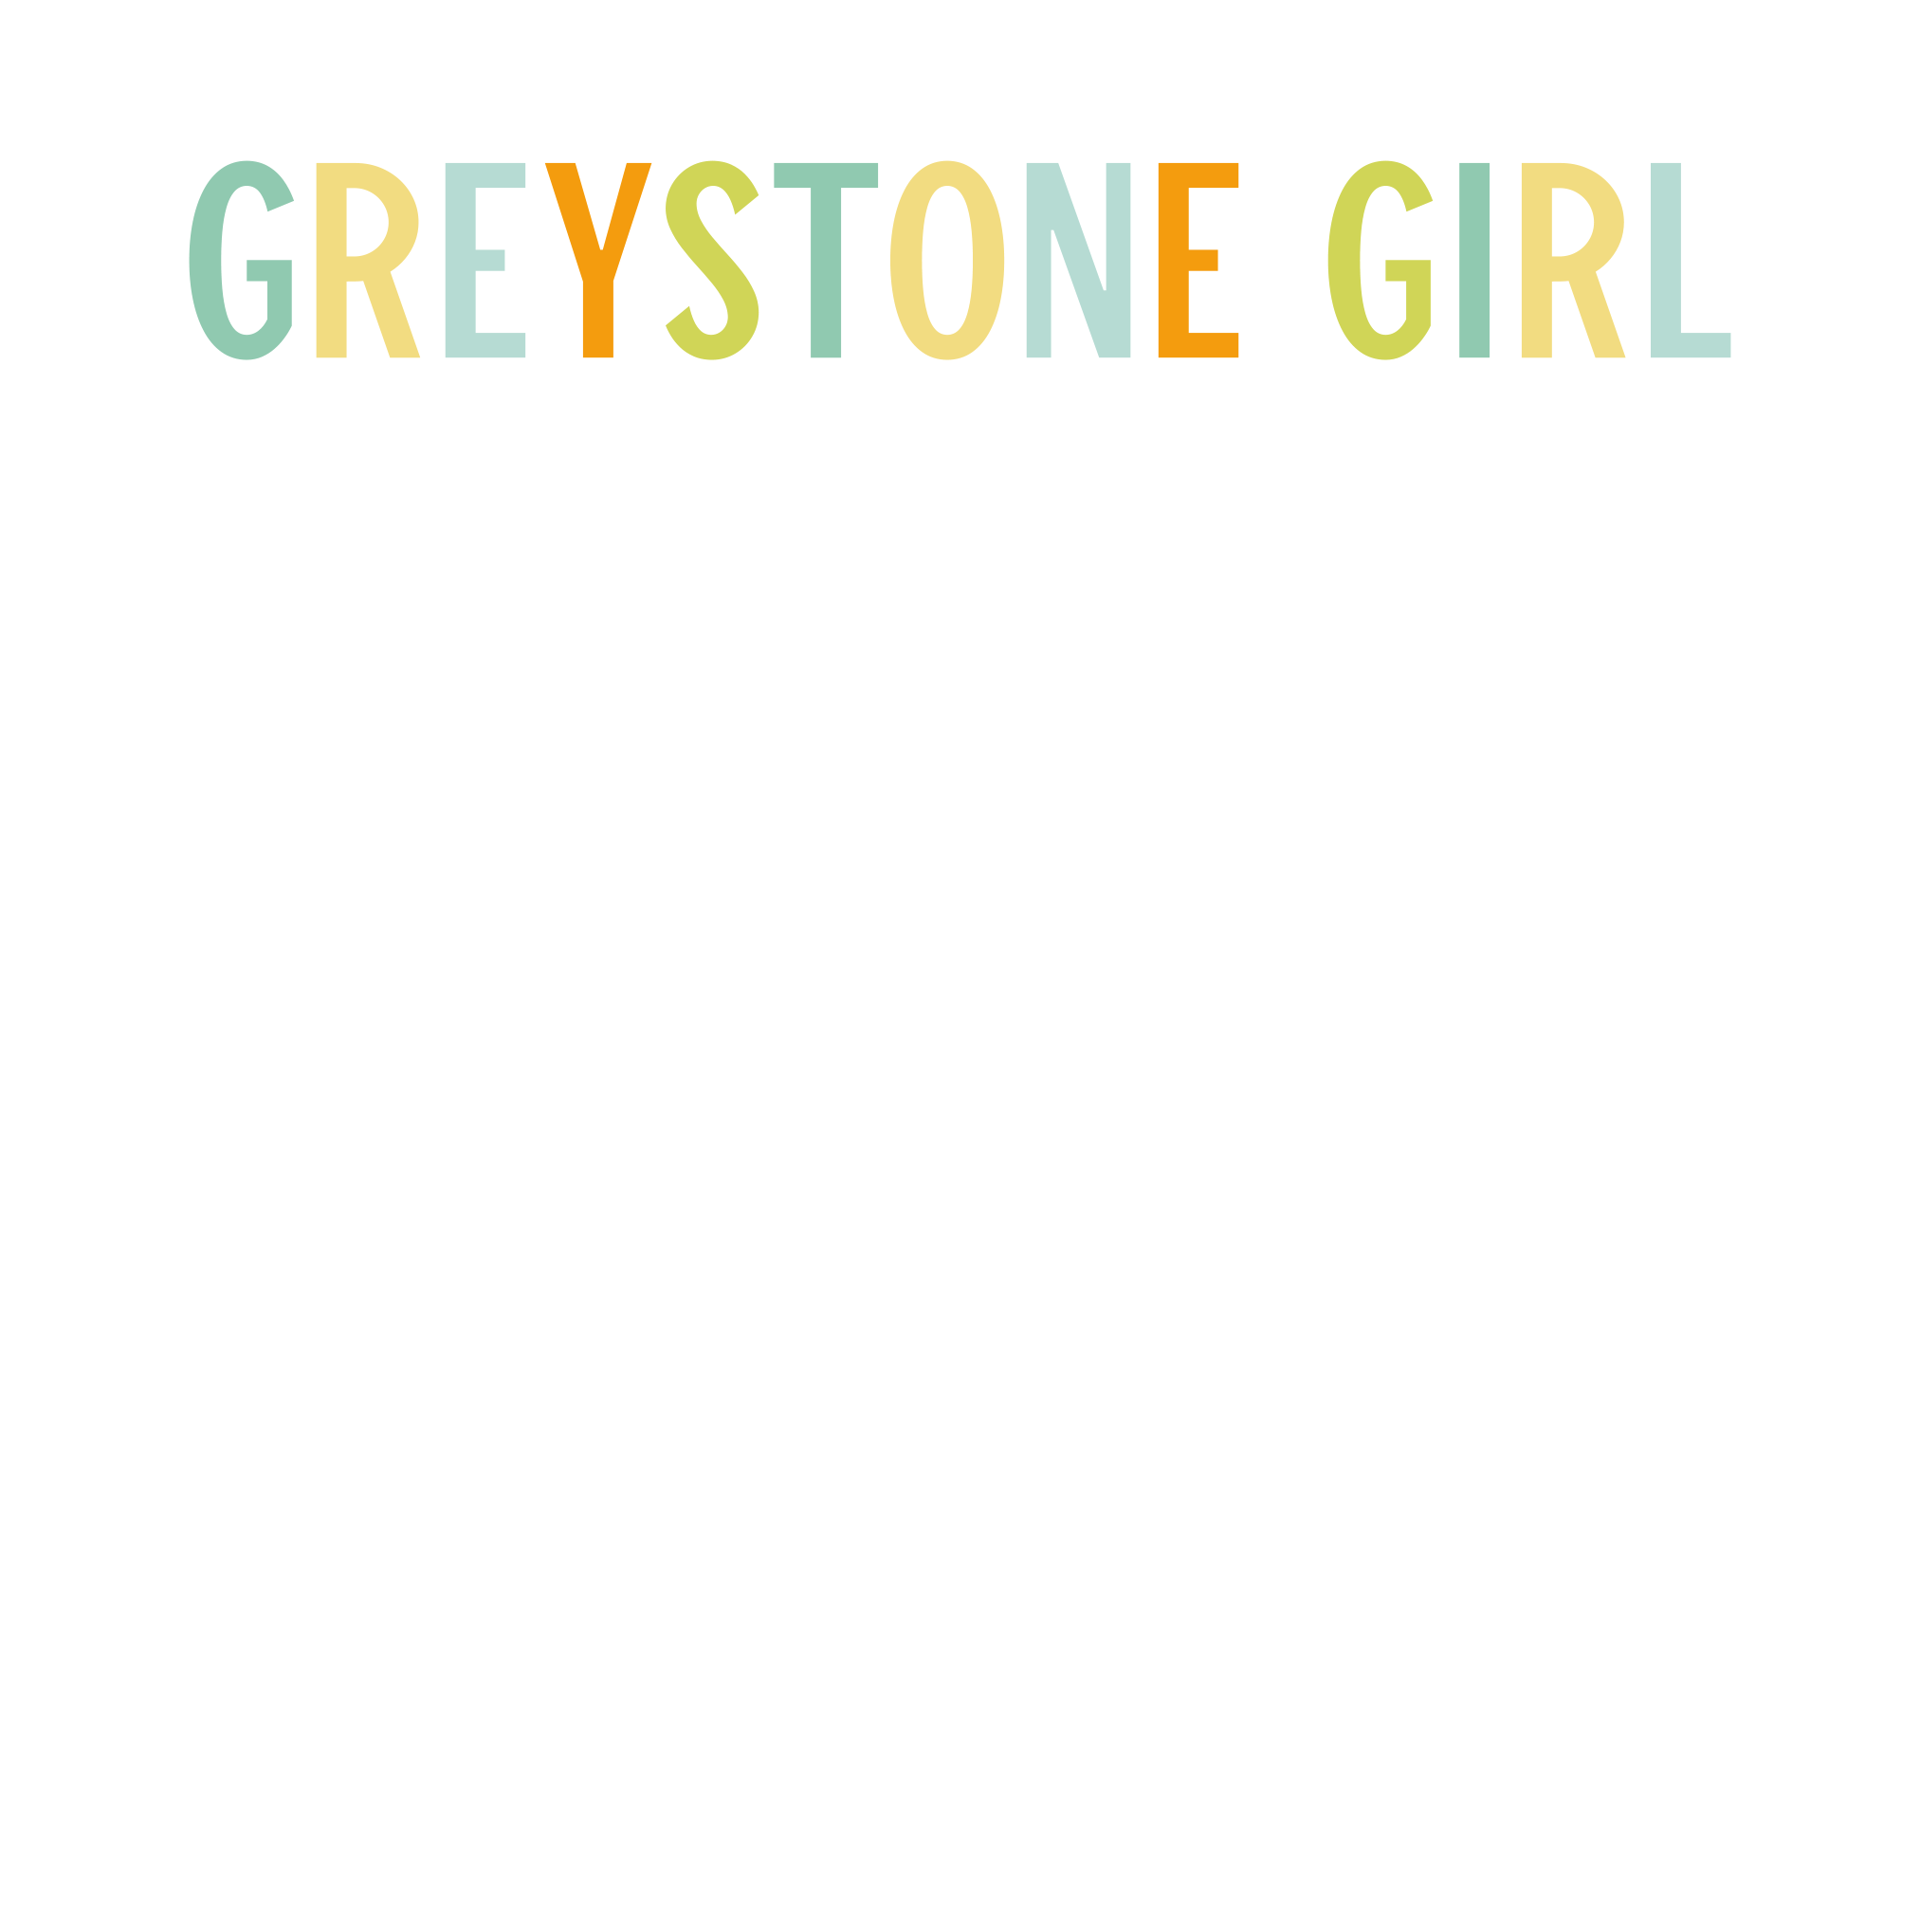 Picture of Greystone Girl Note Pad